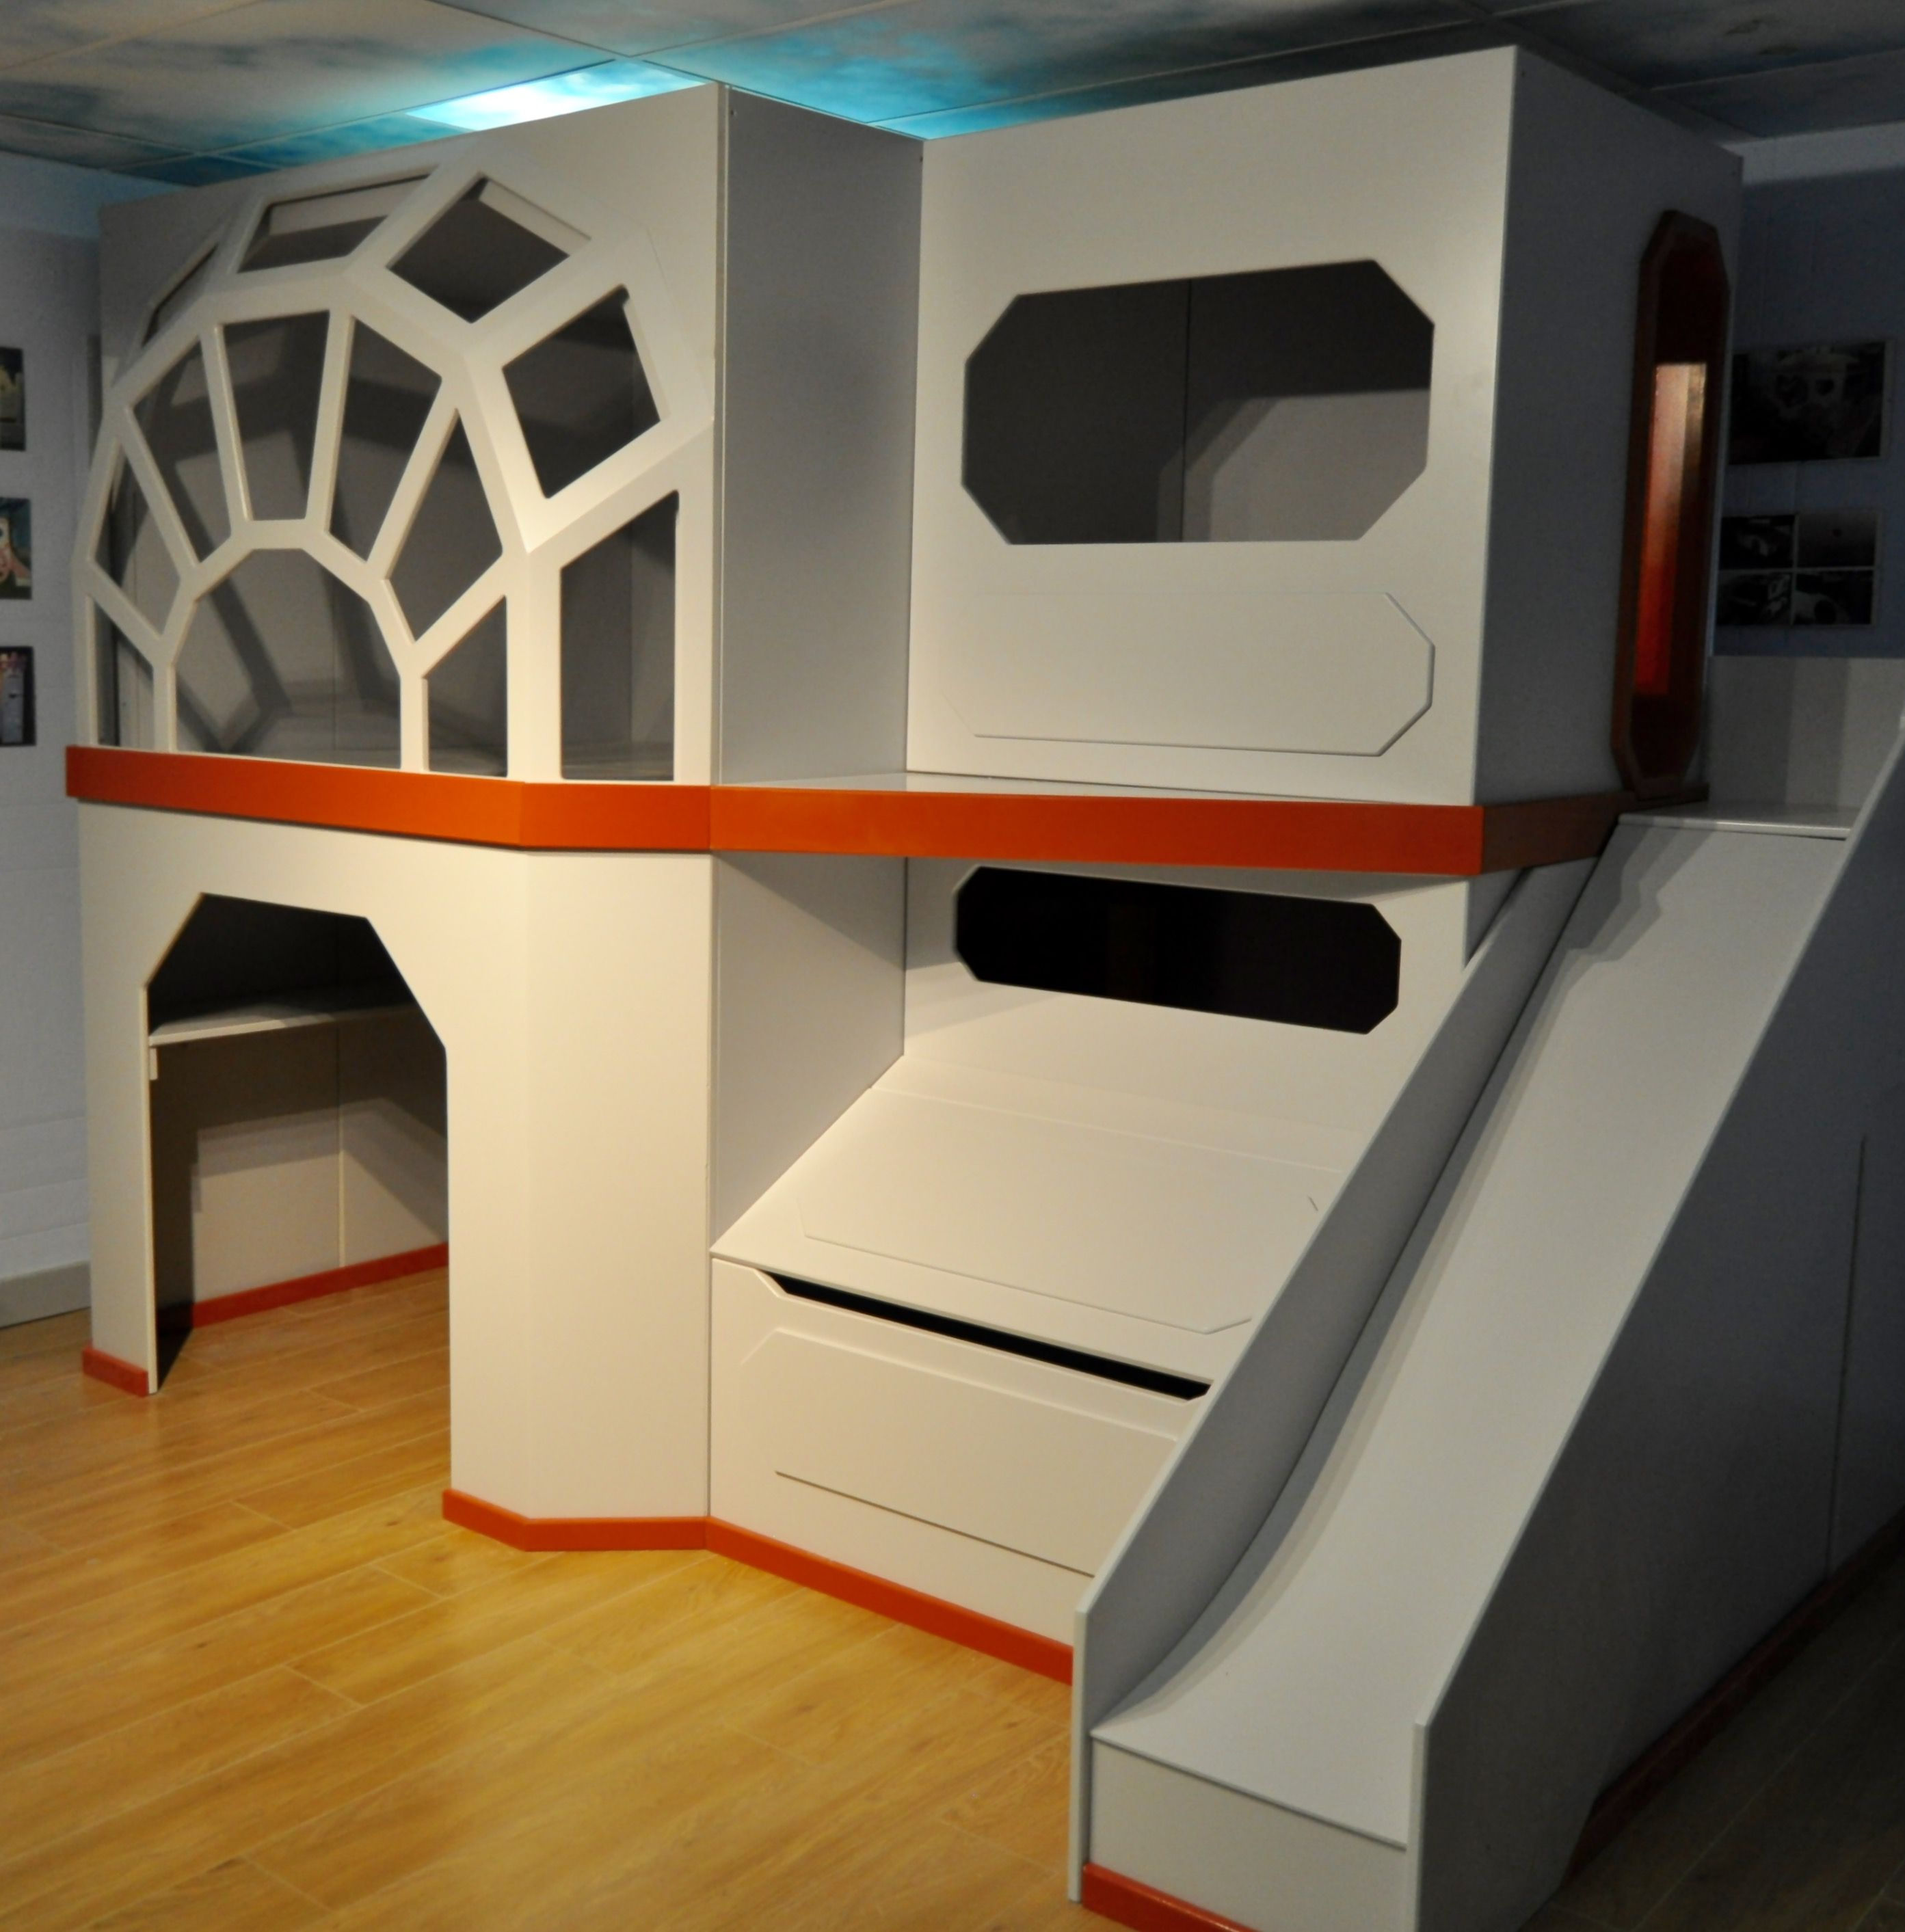 Star Wars Children S Bedroom Bunk Bed Idea Remodel Bedroom Kids Bedroom Remodel Guest Bedroom Remodel